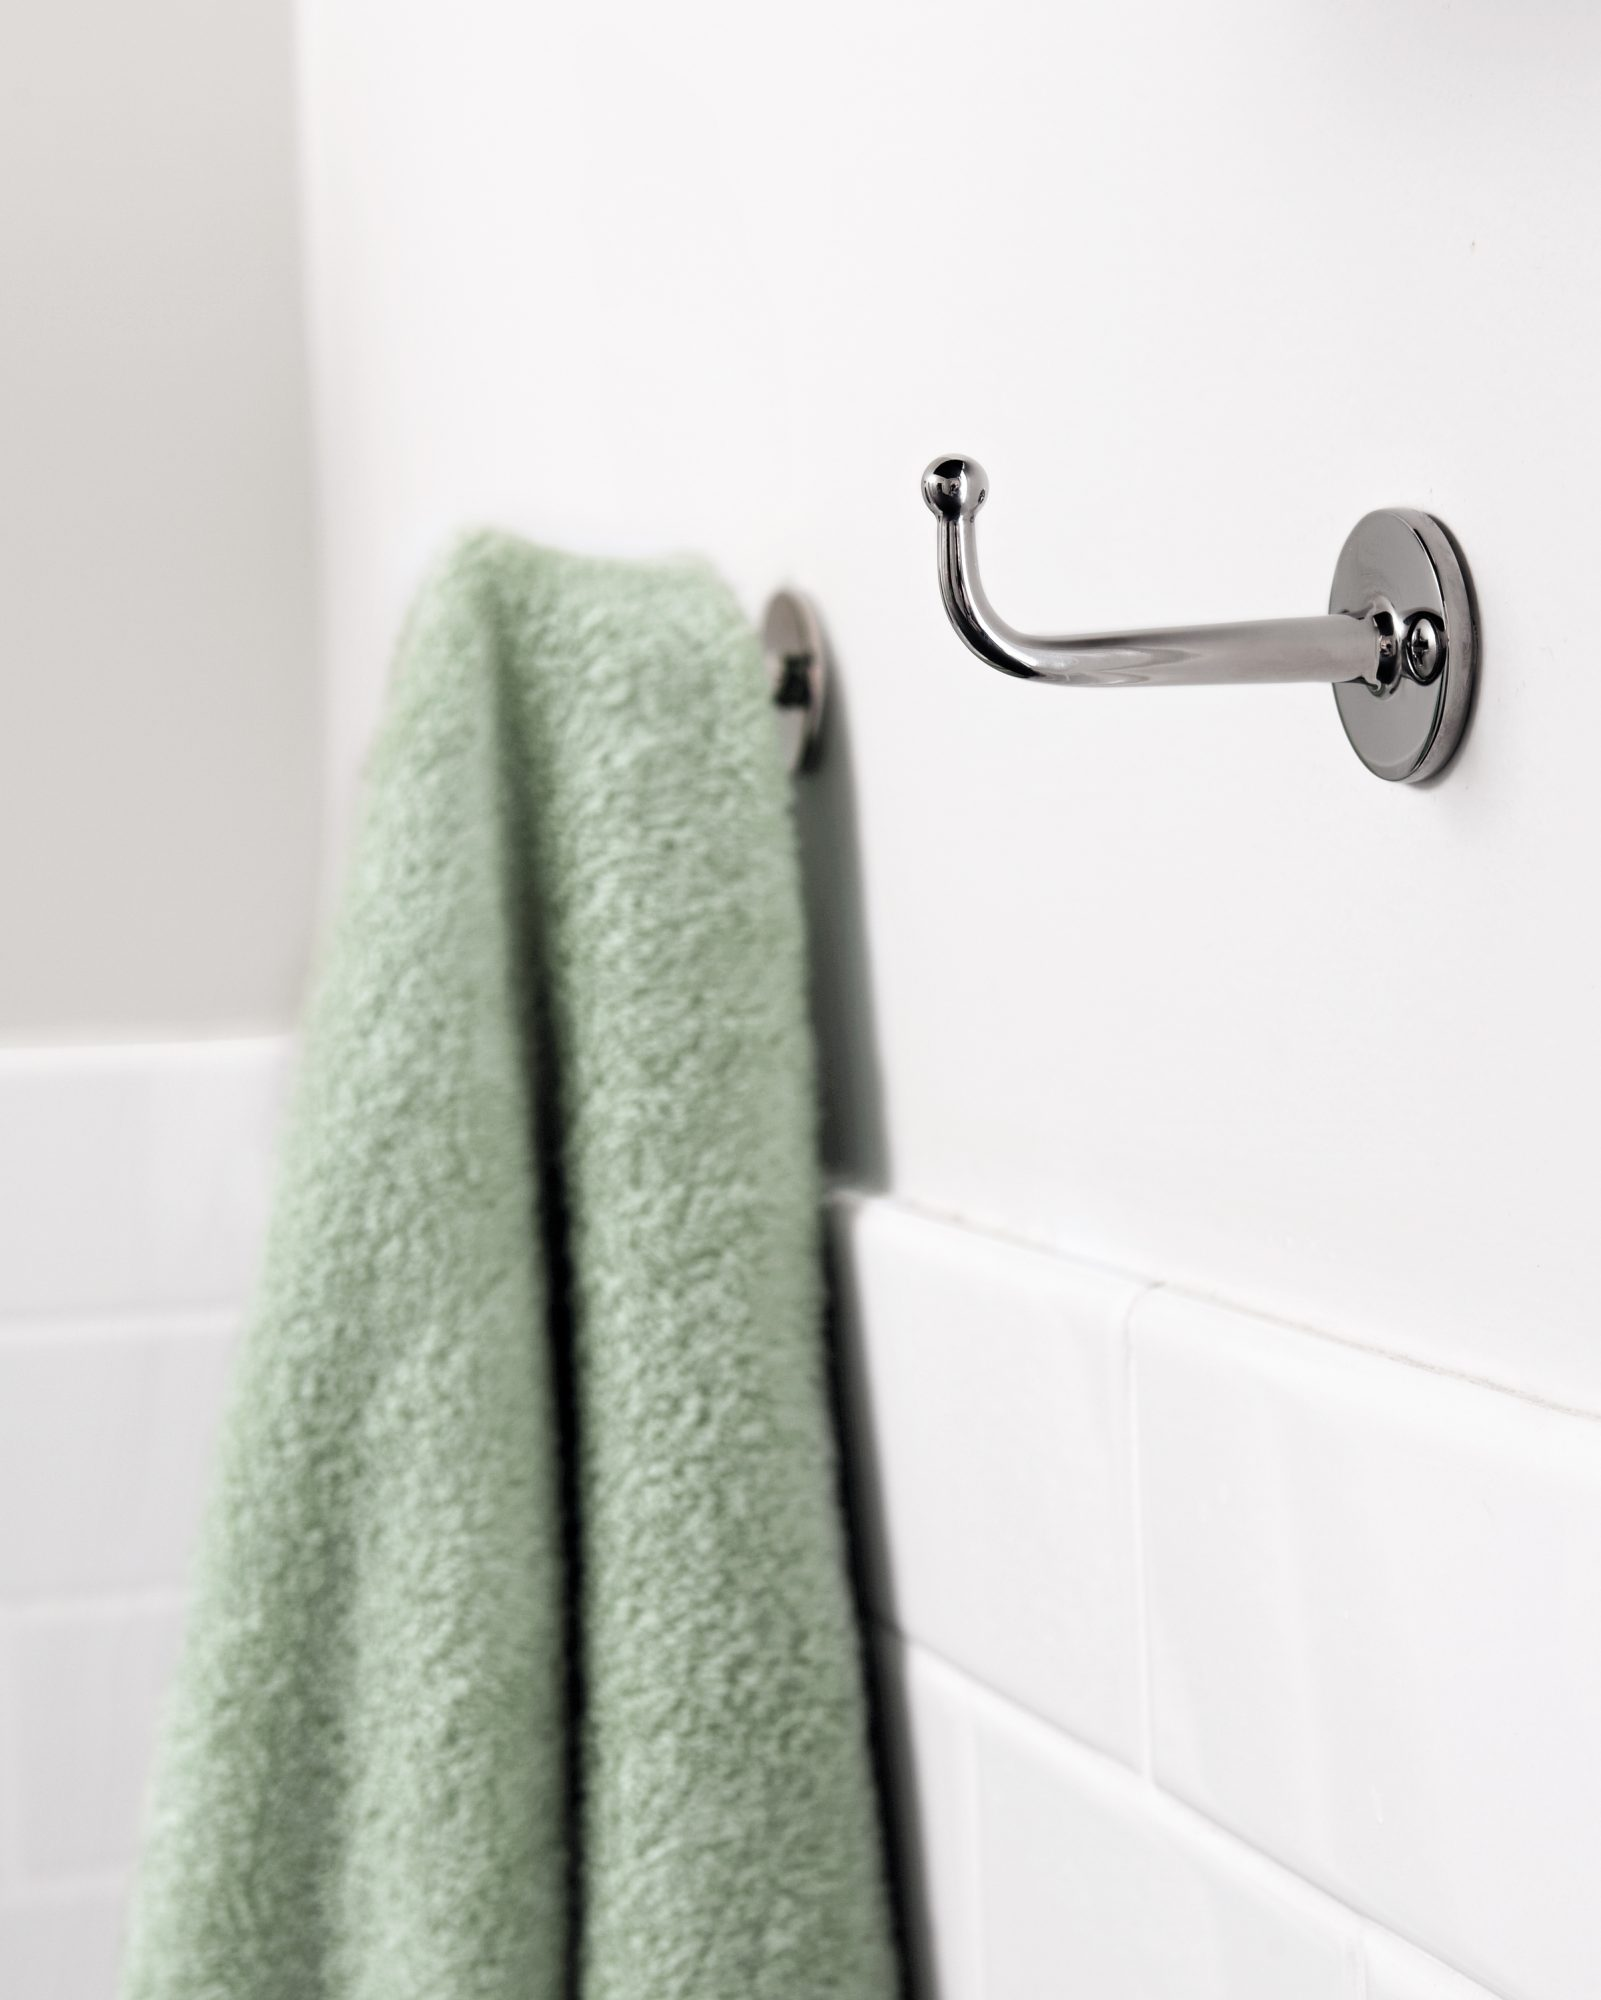 bathroom-storage-hooks-6223-d111382.jpg